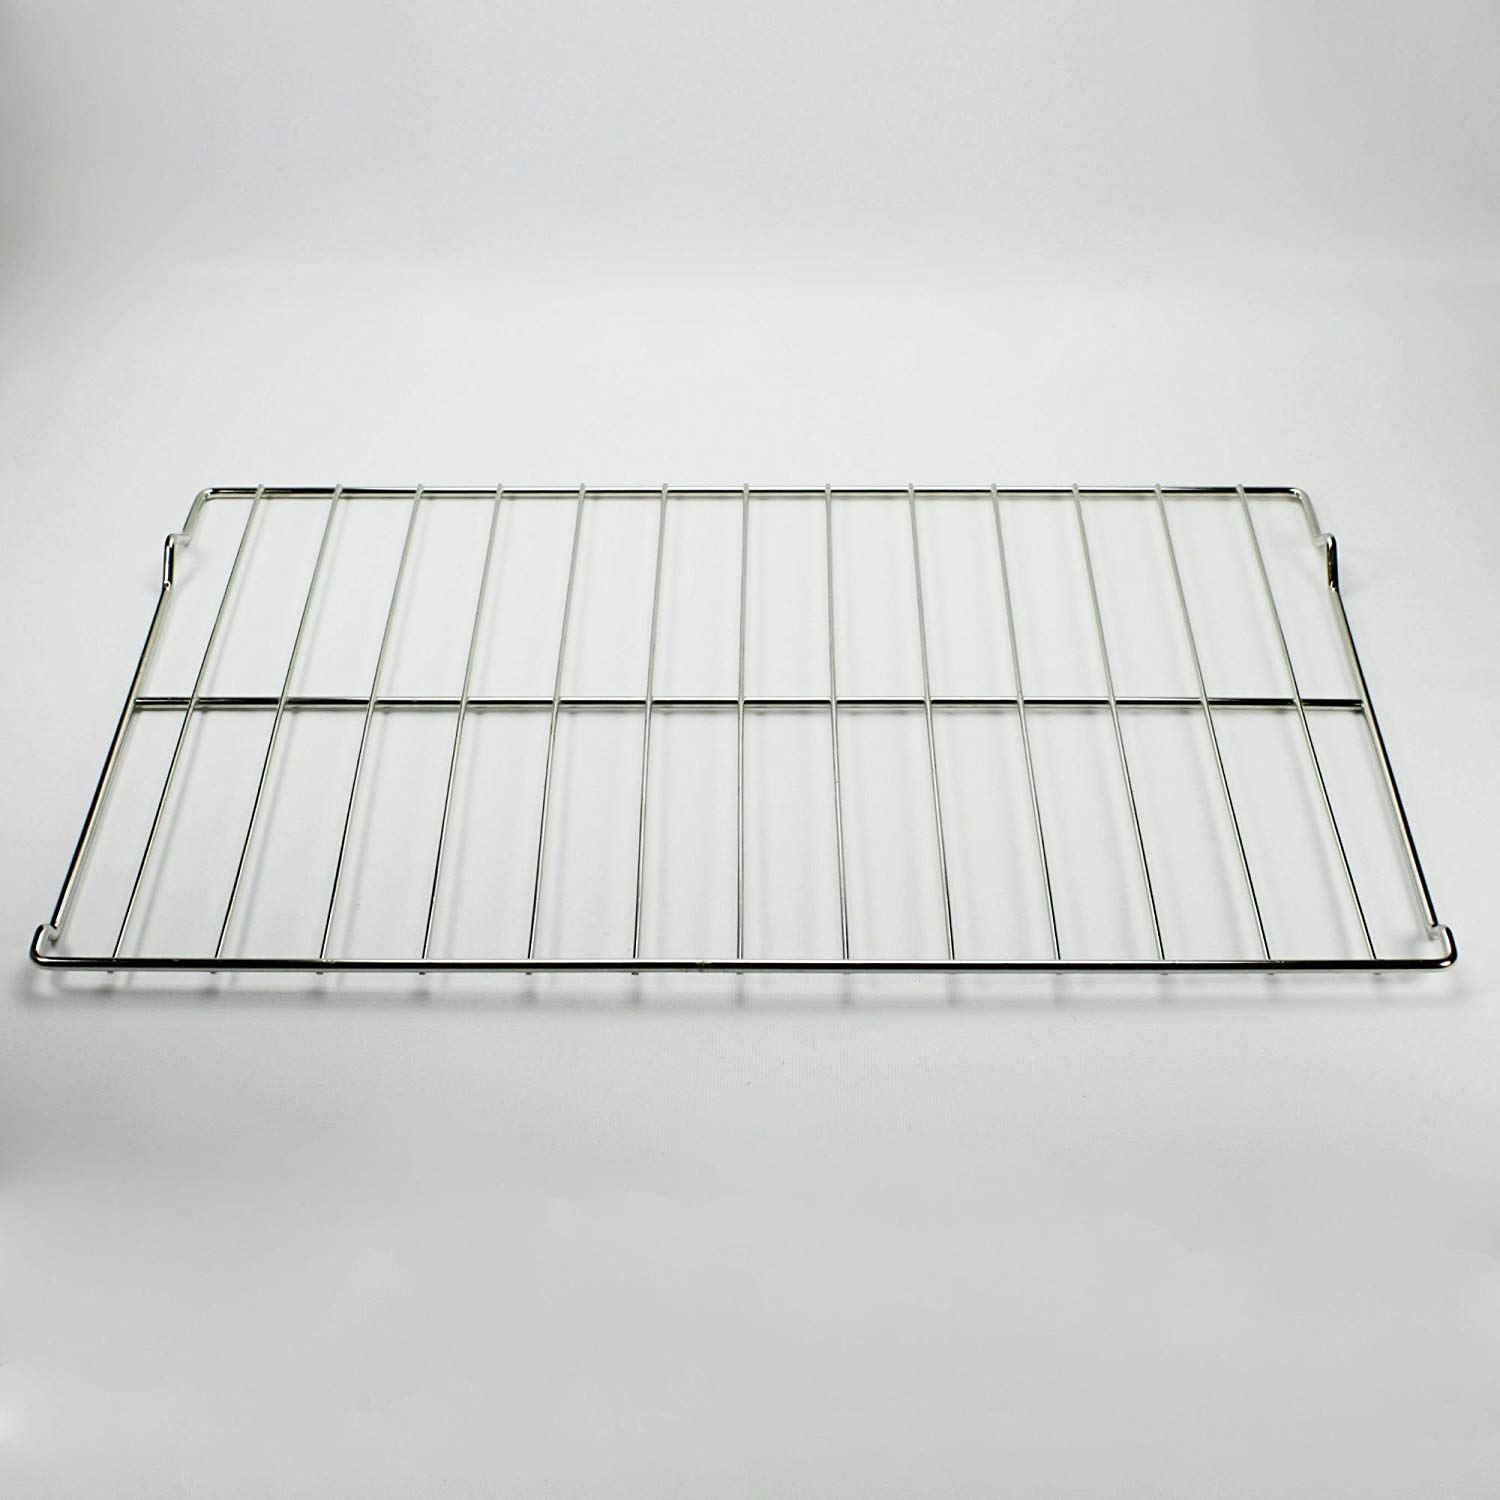 Edgewater Parts Replacement Oven Rack Compatible with Whirlpool W10256908